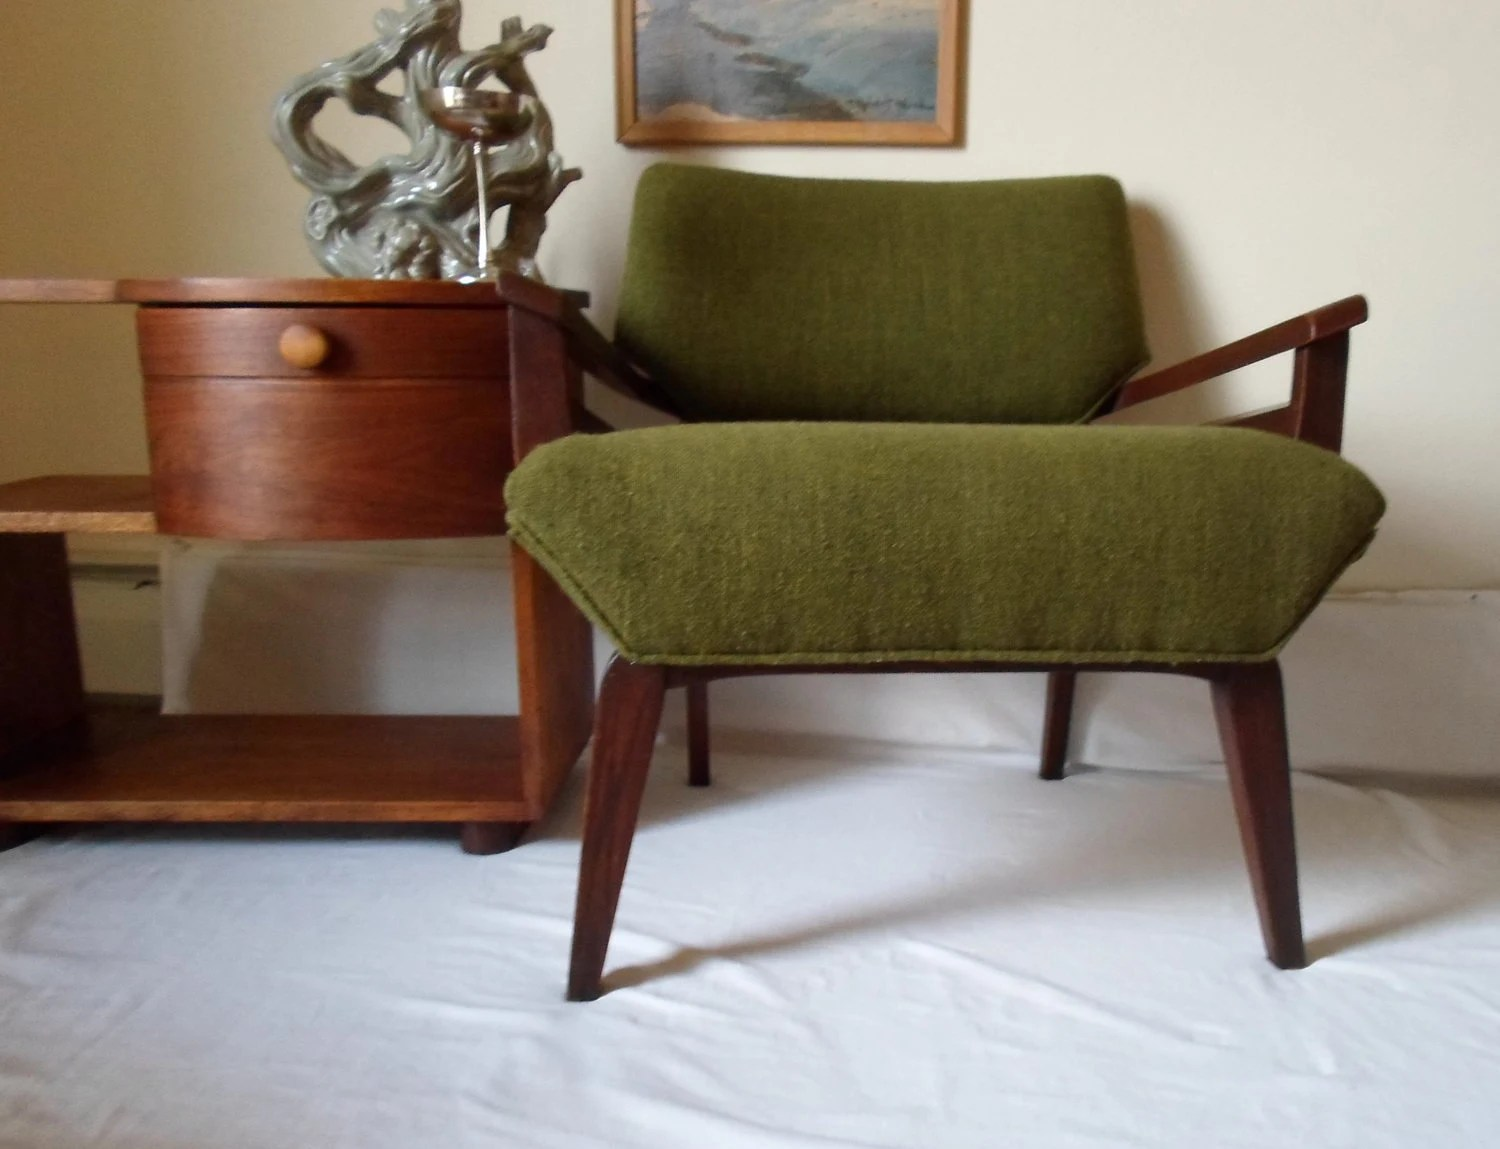 Mid Century Upholstered Chair Vintage Mid Century Modern Lounge Chair Upholstered